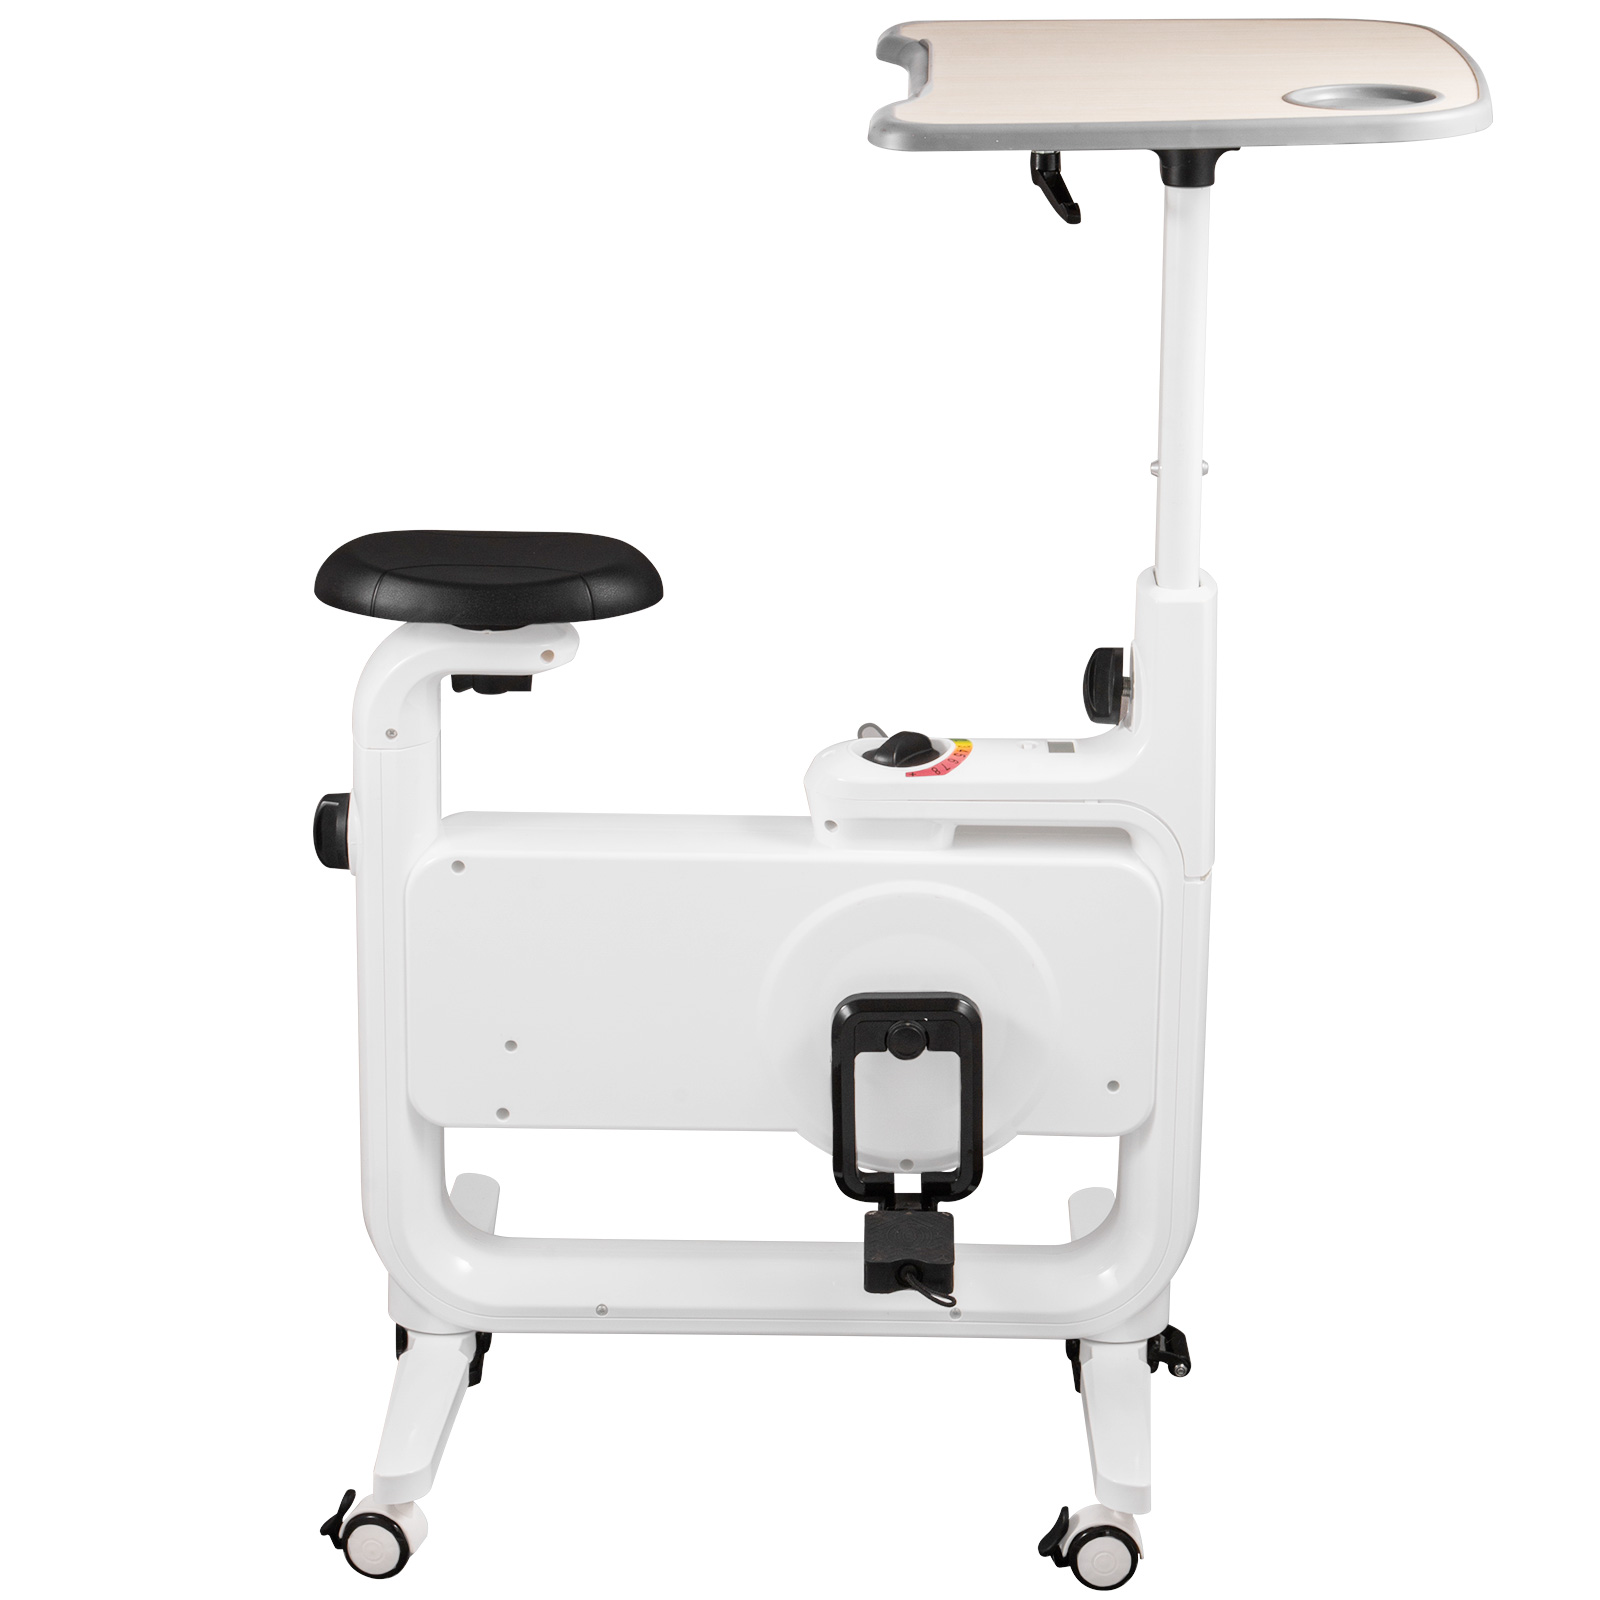 Multi-style-Magnetic-Exercise-Bike-office-Bicycle-under-Desk-Fitness-Cardio miniature 46